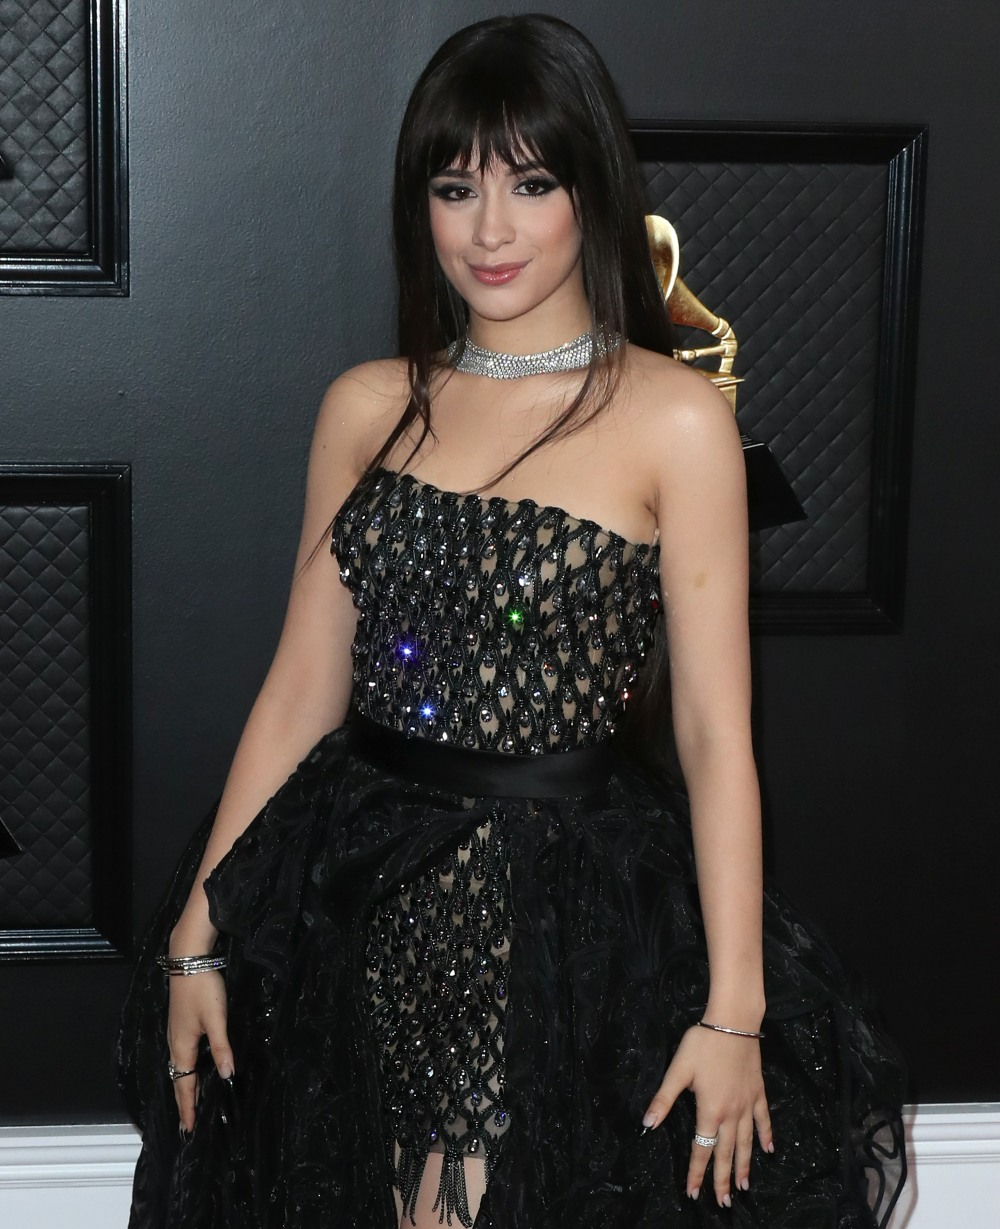 Singer Camila Cabello wearing a Versace dress and shoes with Le Vian jewelry arrives at the 62nd Annual GRAMMY Awards held at Staples Center on January 26, 2020 in Los Angeles, California, United States.